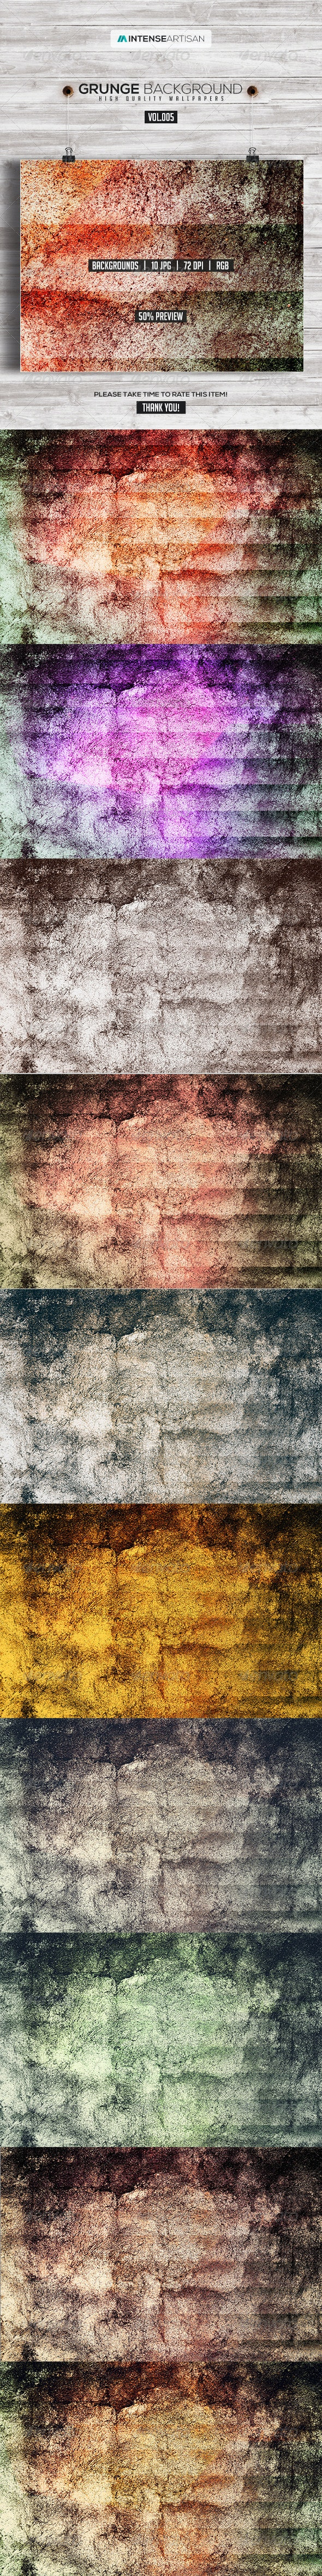 10 Grunge Background Vol.5 - Backgrounds Graphics